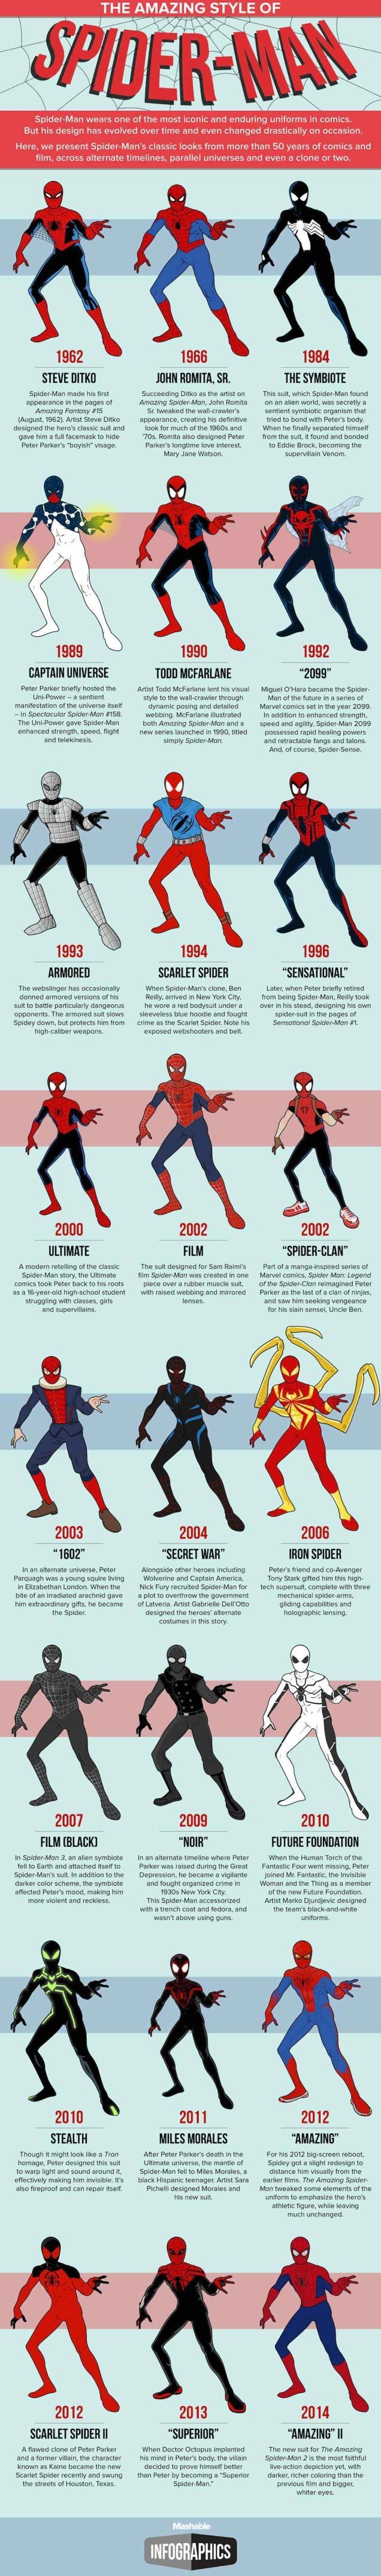 The many costumes of Spider-Man (there are still many more that aren't shown here!)